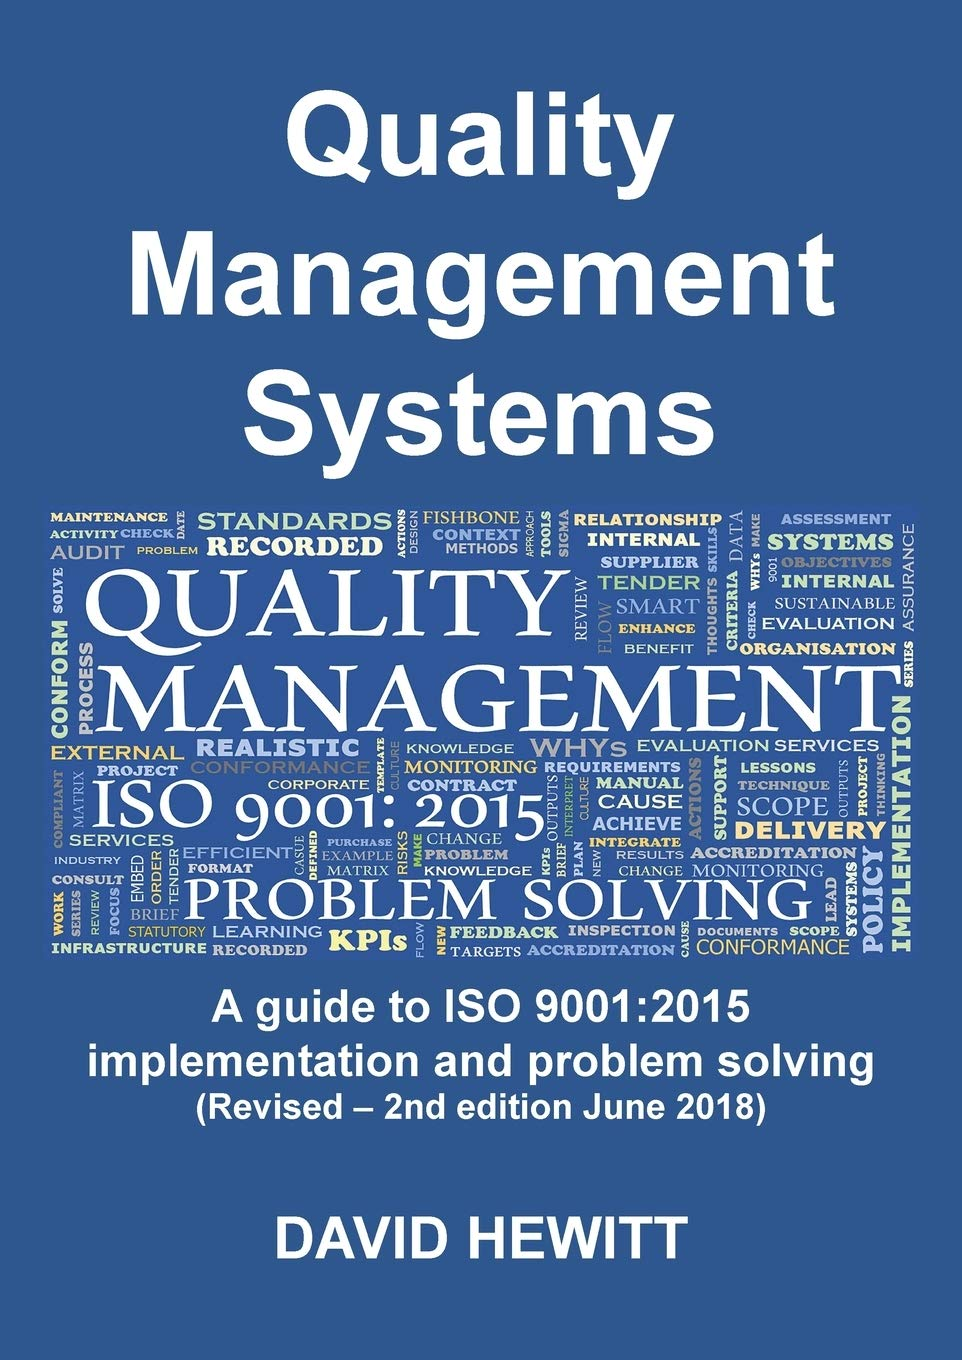 Quality Management Systems A Guide To ISO 9001  2015 Implementation And Problem Solving  Revised   2nd Edition June 2018